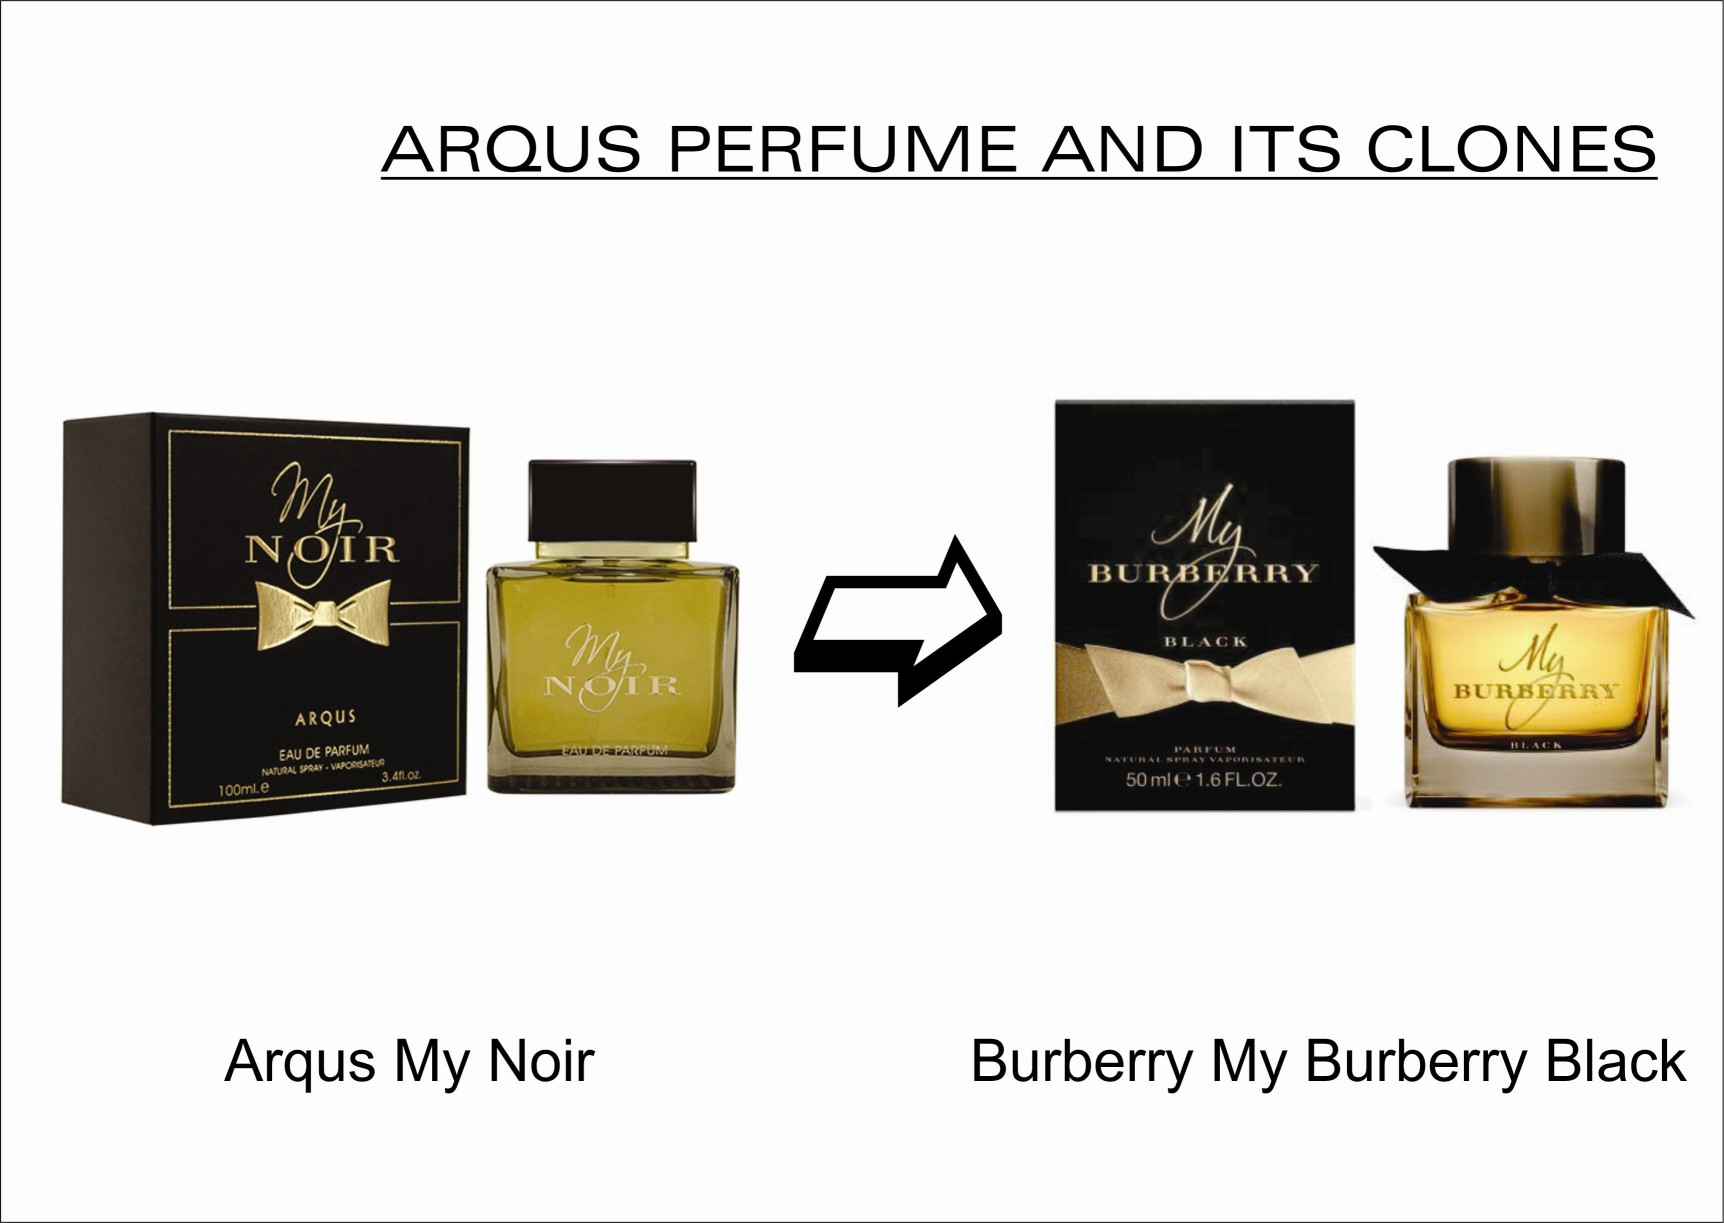 arqus-my-noir-perfume-for-women-100-ml-edp-by-lattafa-perfumes-burberry-my-burberry-black-for-men-90-ml-edp